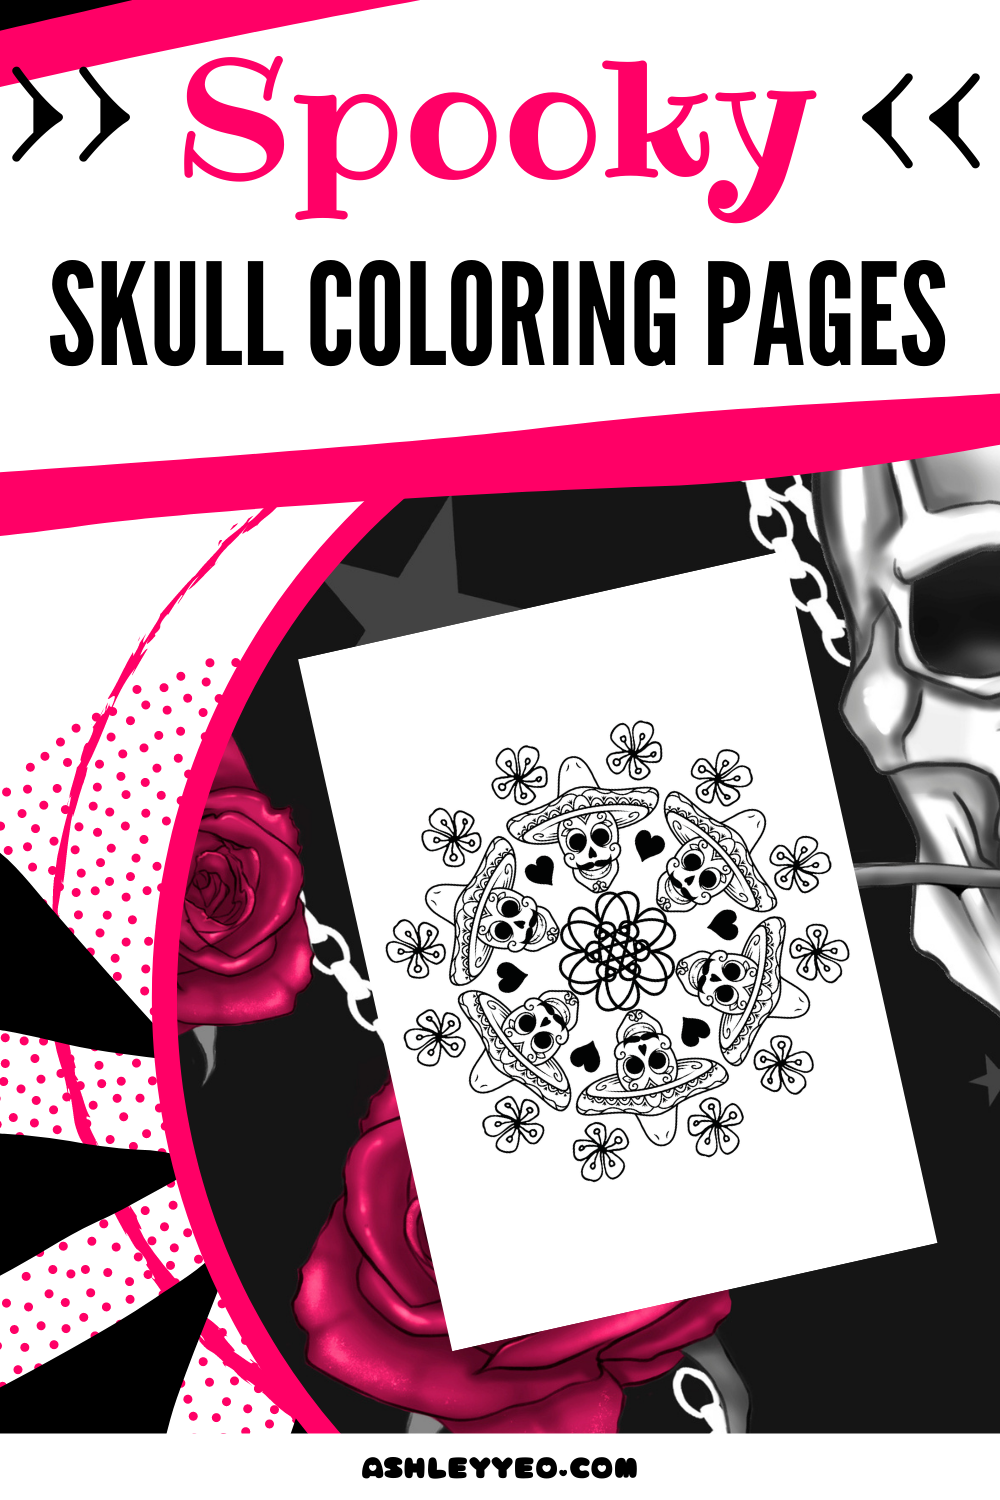 Spooky Skull Coloring Pages